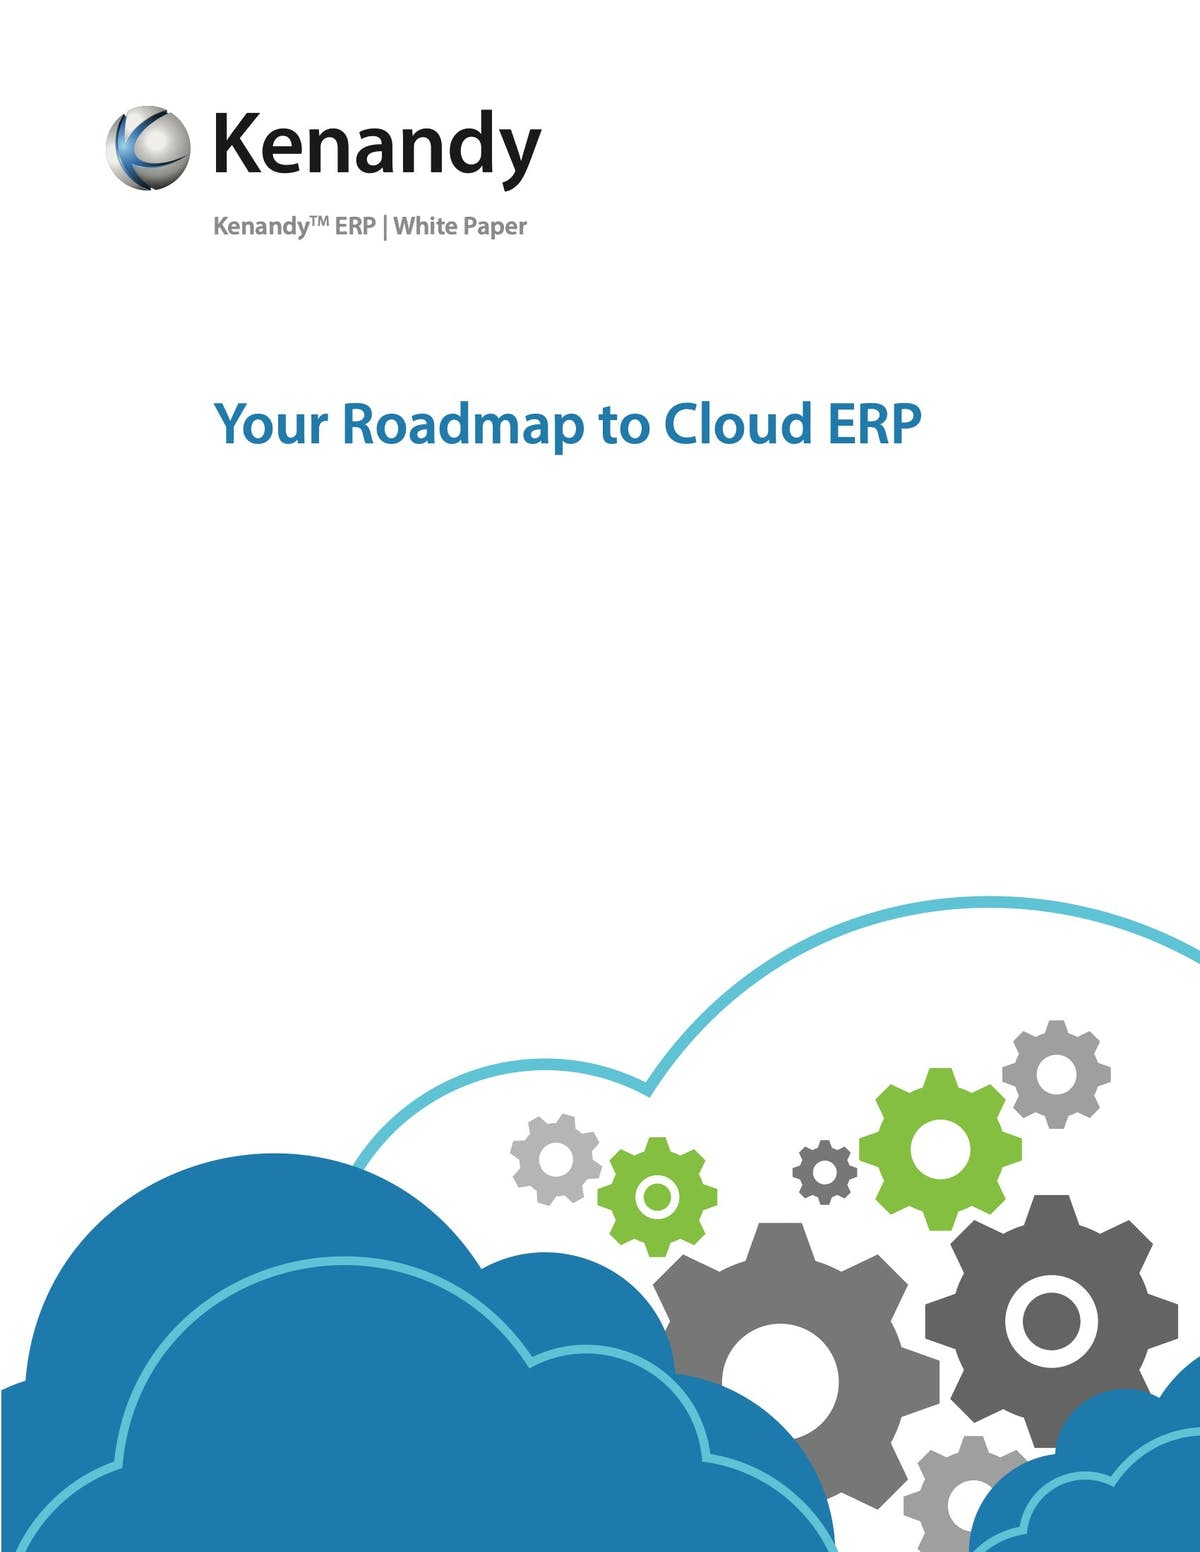 Kenandy ERP White Paper - Your Roadmap to Cloud ERP